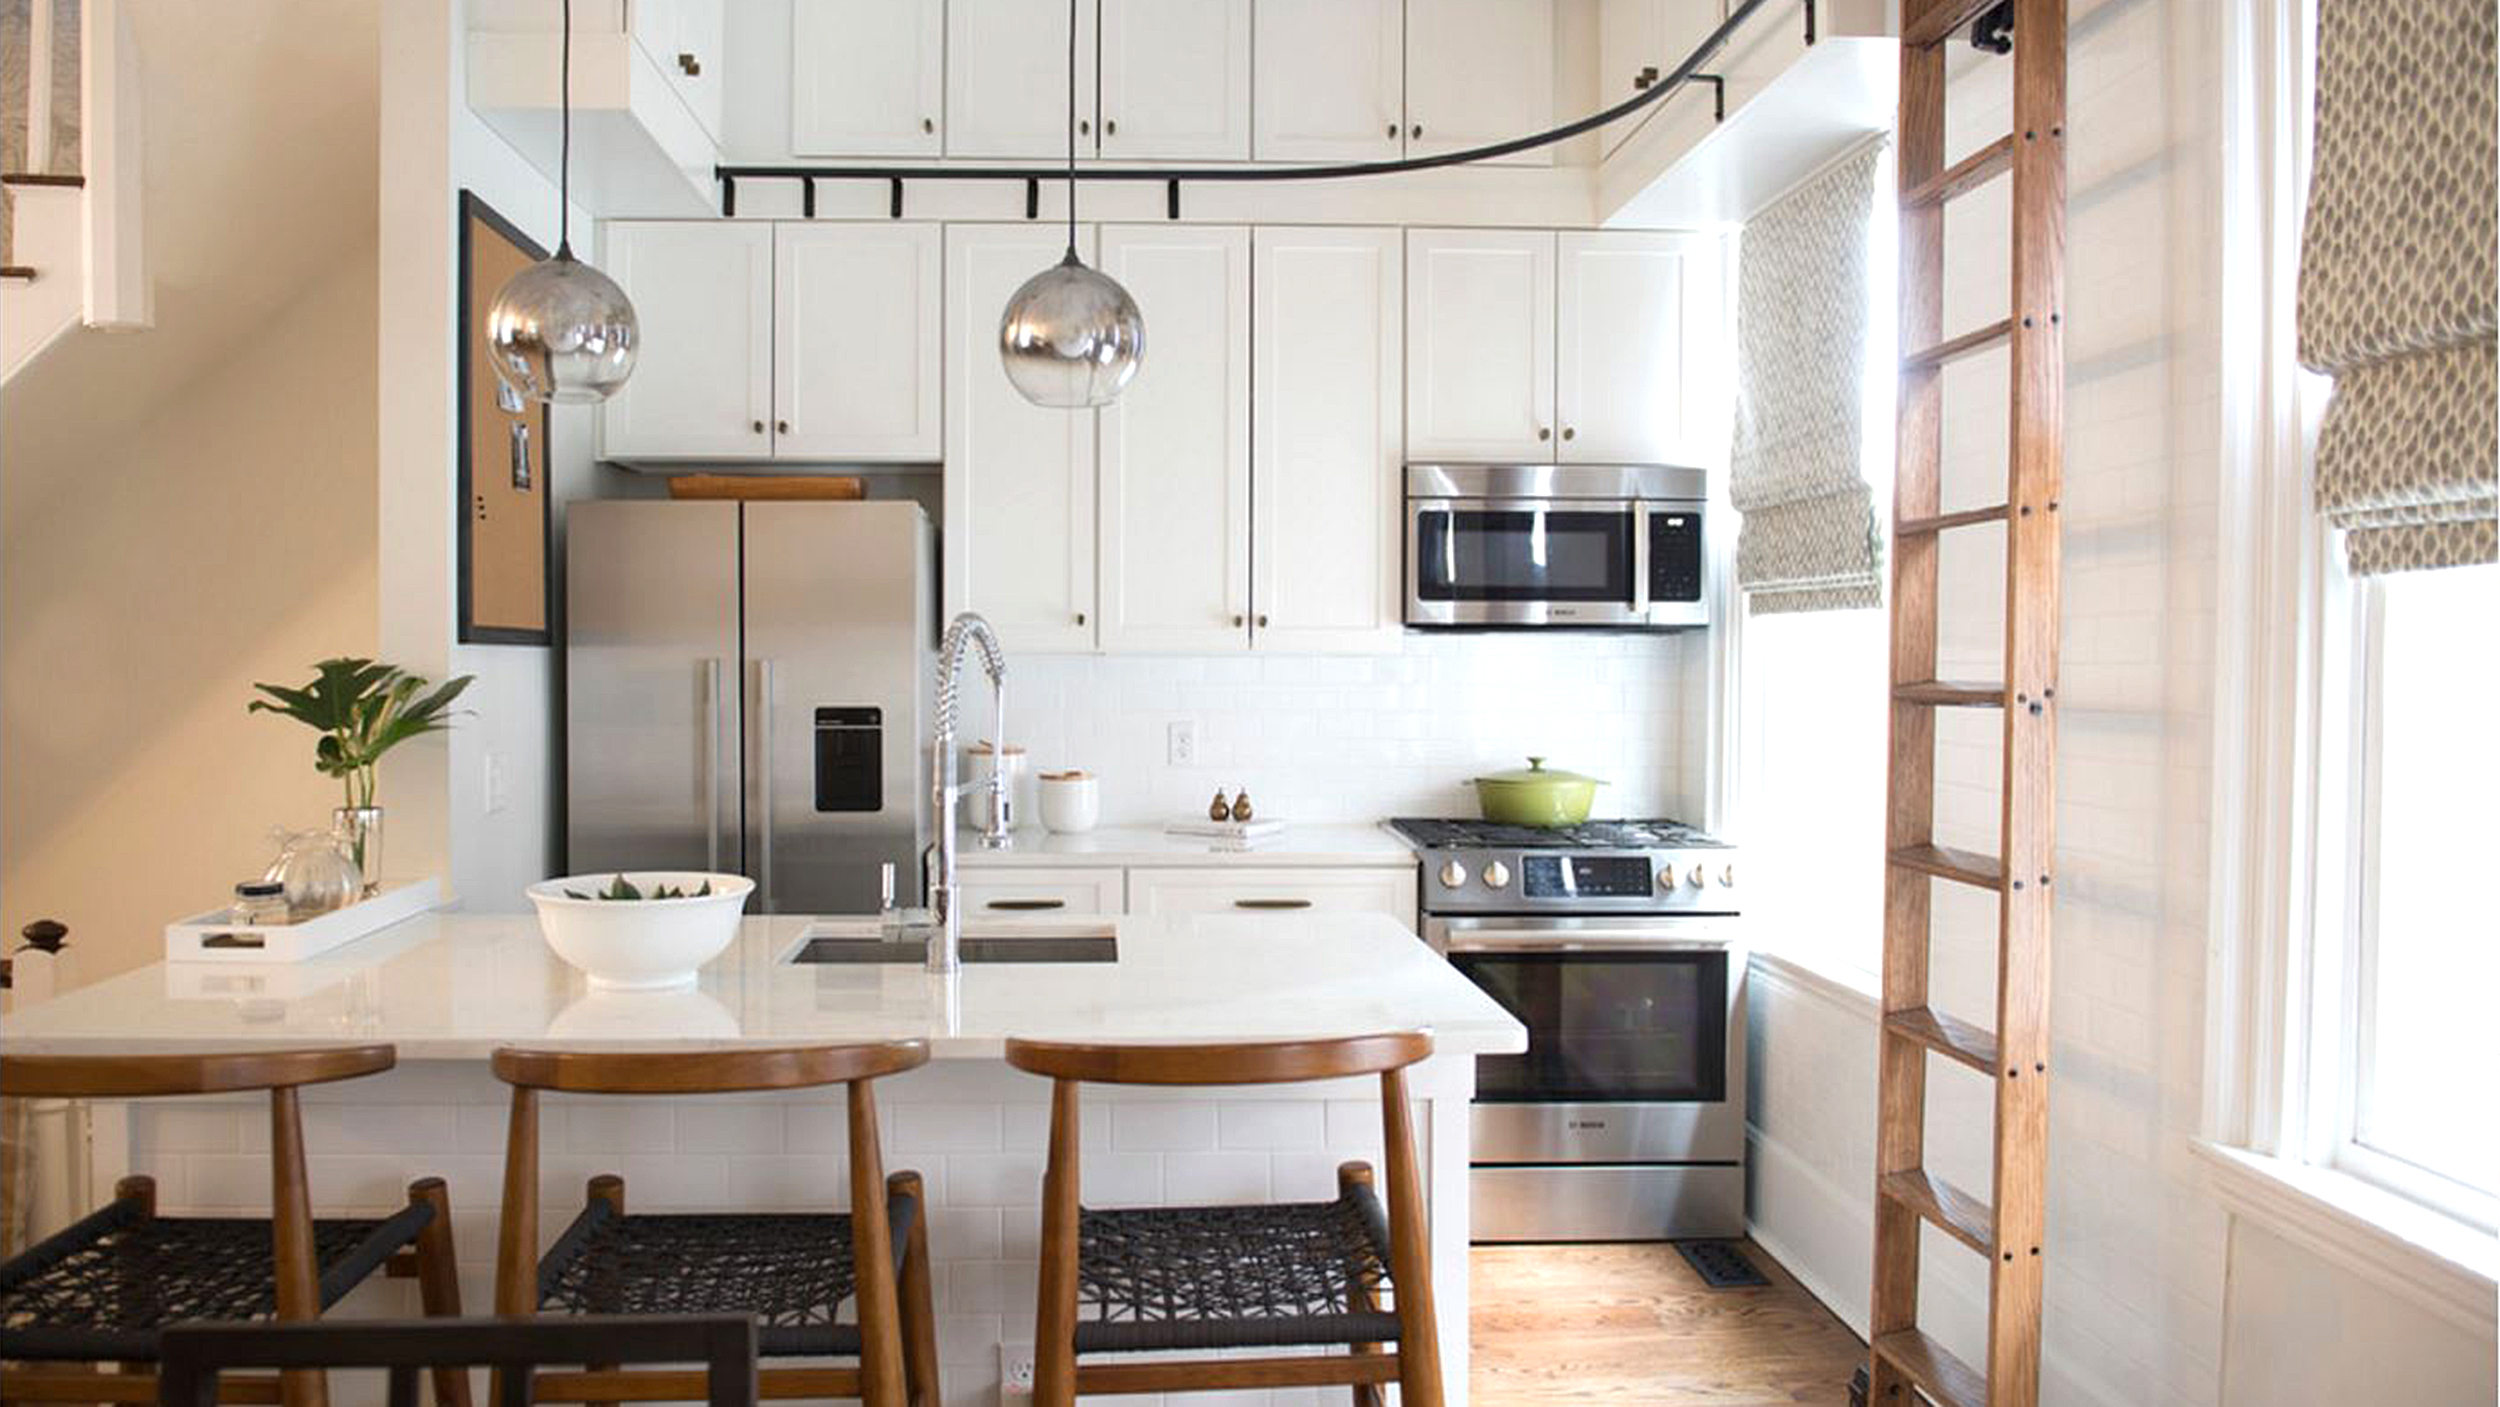 Kitchen maximizes storage with the help of a ladder — see how